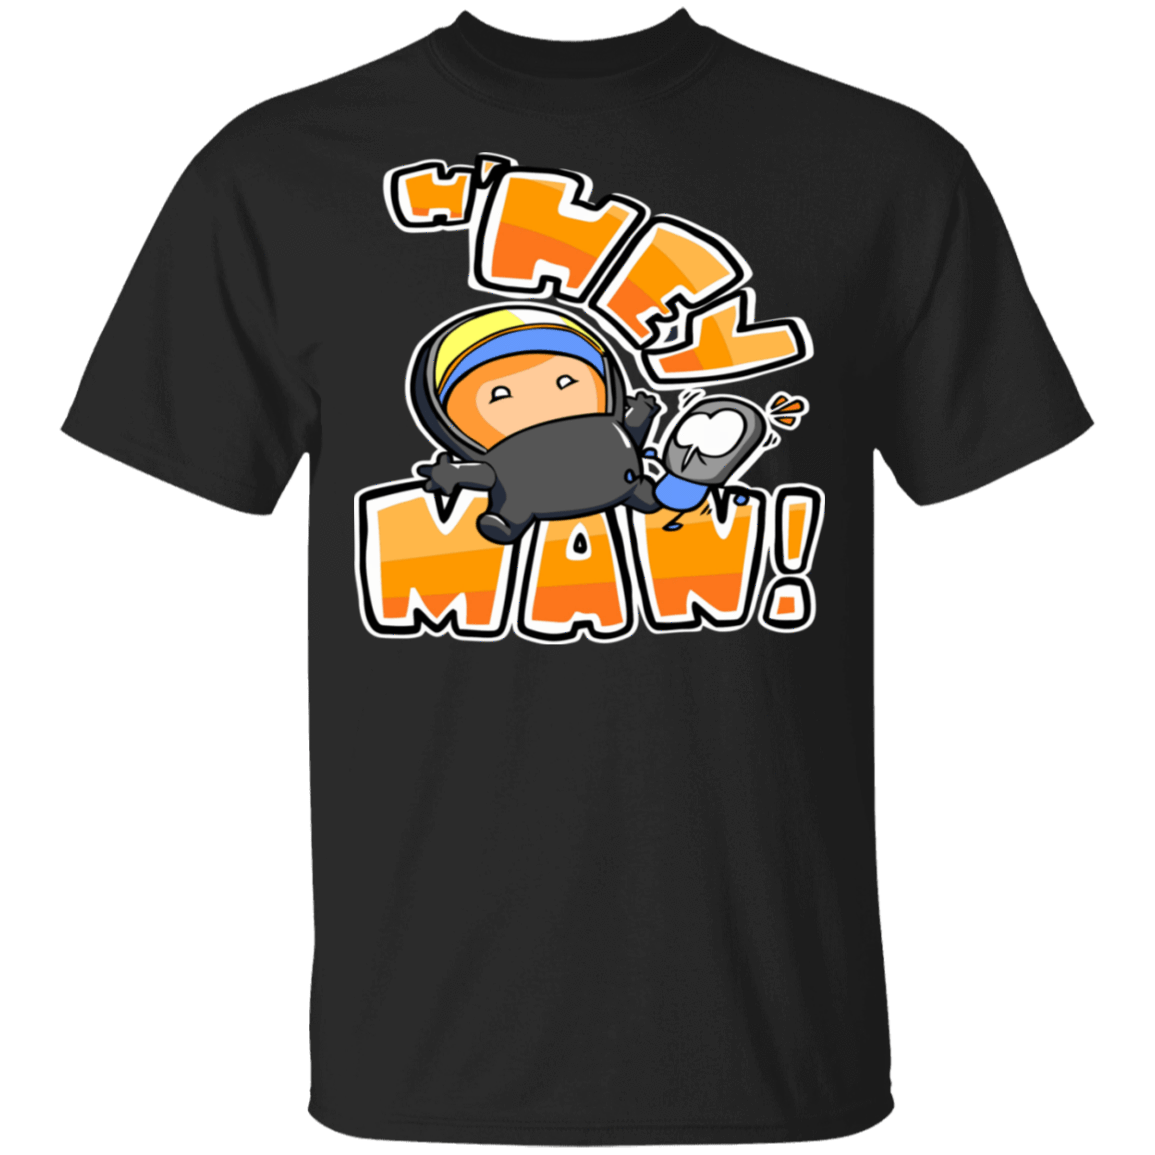 Hey Man T-Shirts, Hoodies, Tank 22-113-79271427-252 - Tee Ript